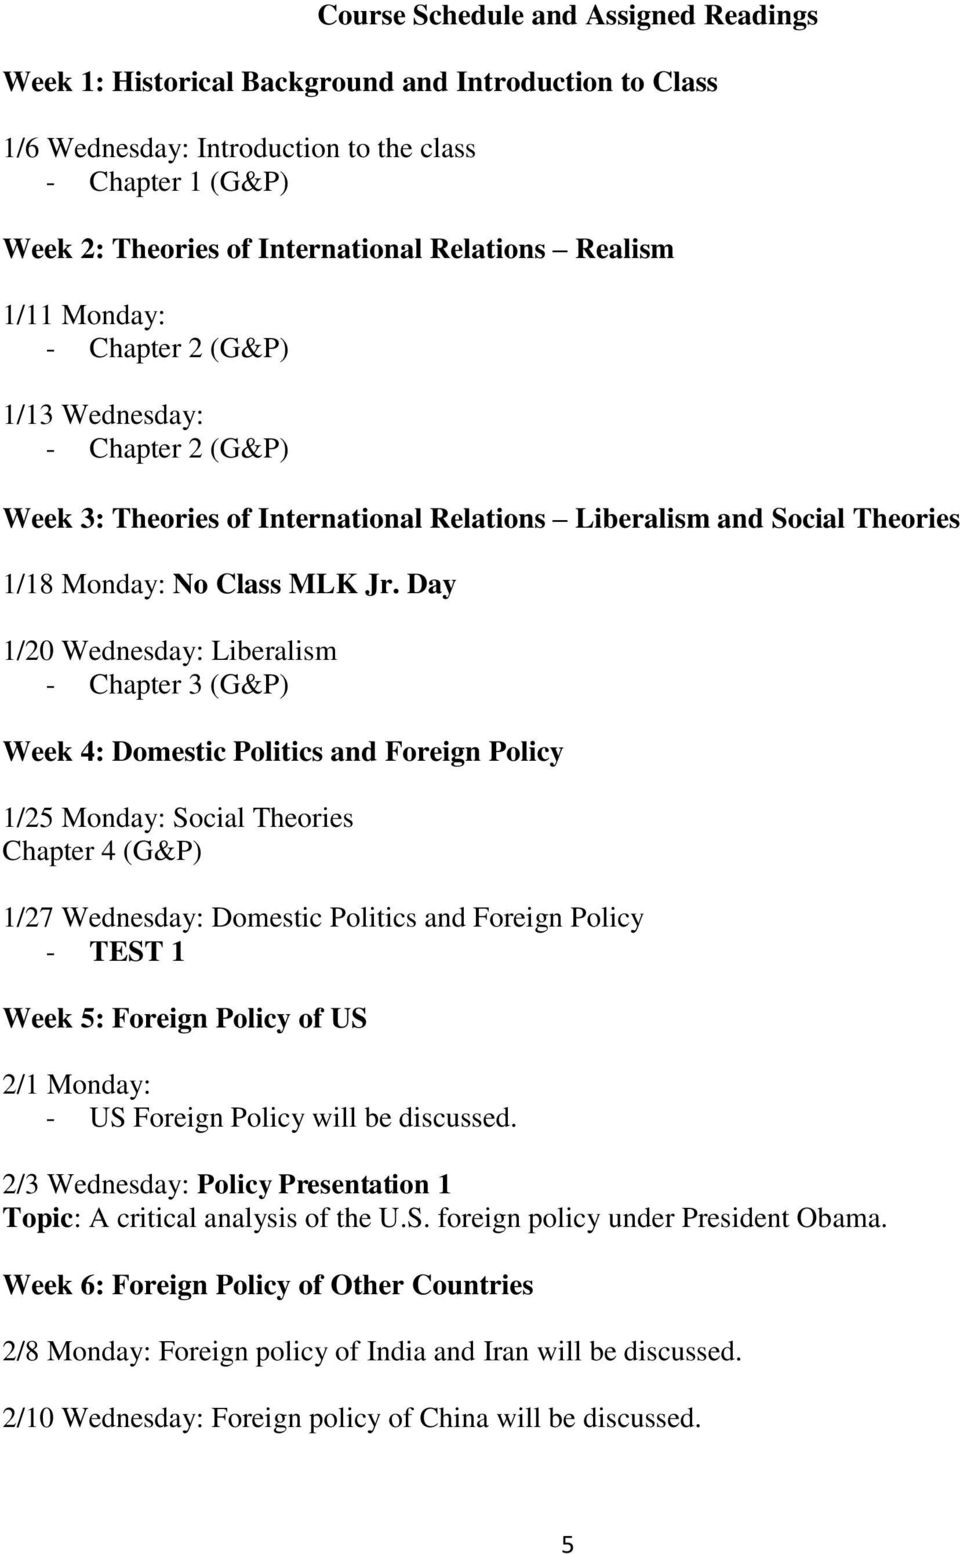 Day 1/20 Wednesday: Liberalism - Chapter 3 (G&P) Week 4: Domestic Politics and Foreign Policy 1/25 Monday: Social Theories Chapter 4 (G&P) 1/27 Wednesday: Domestic Politics and Foreign Policy - TEST